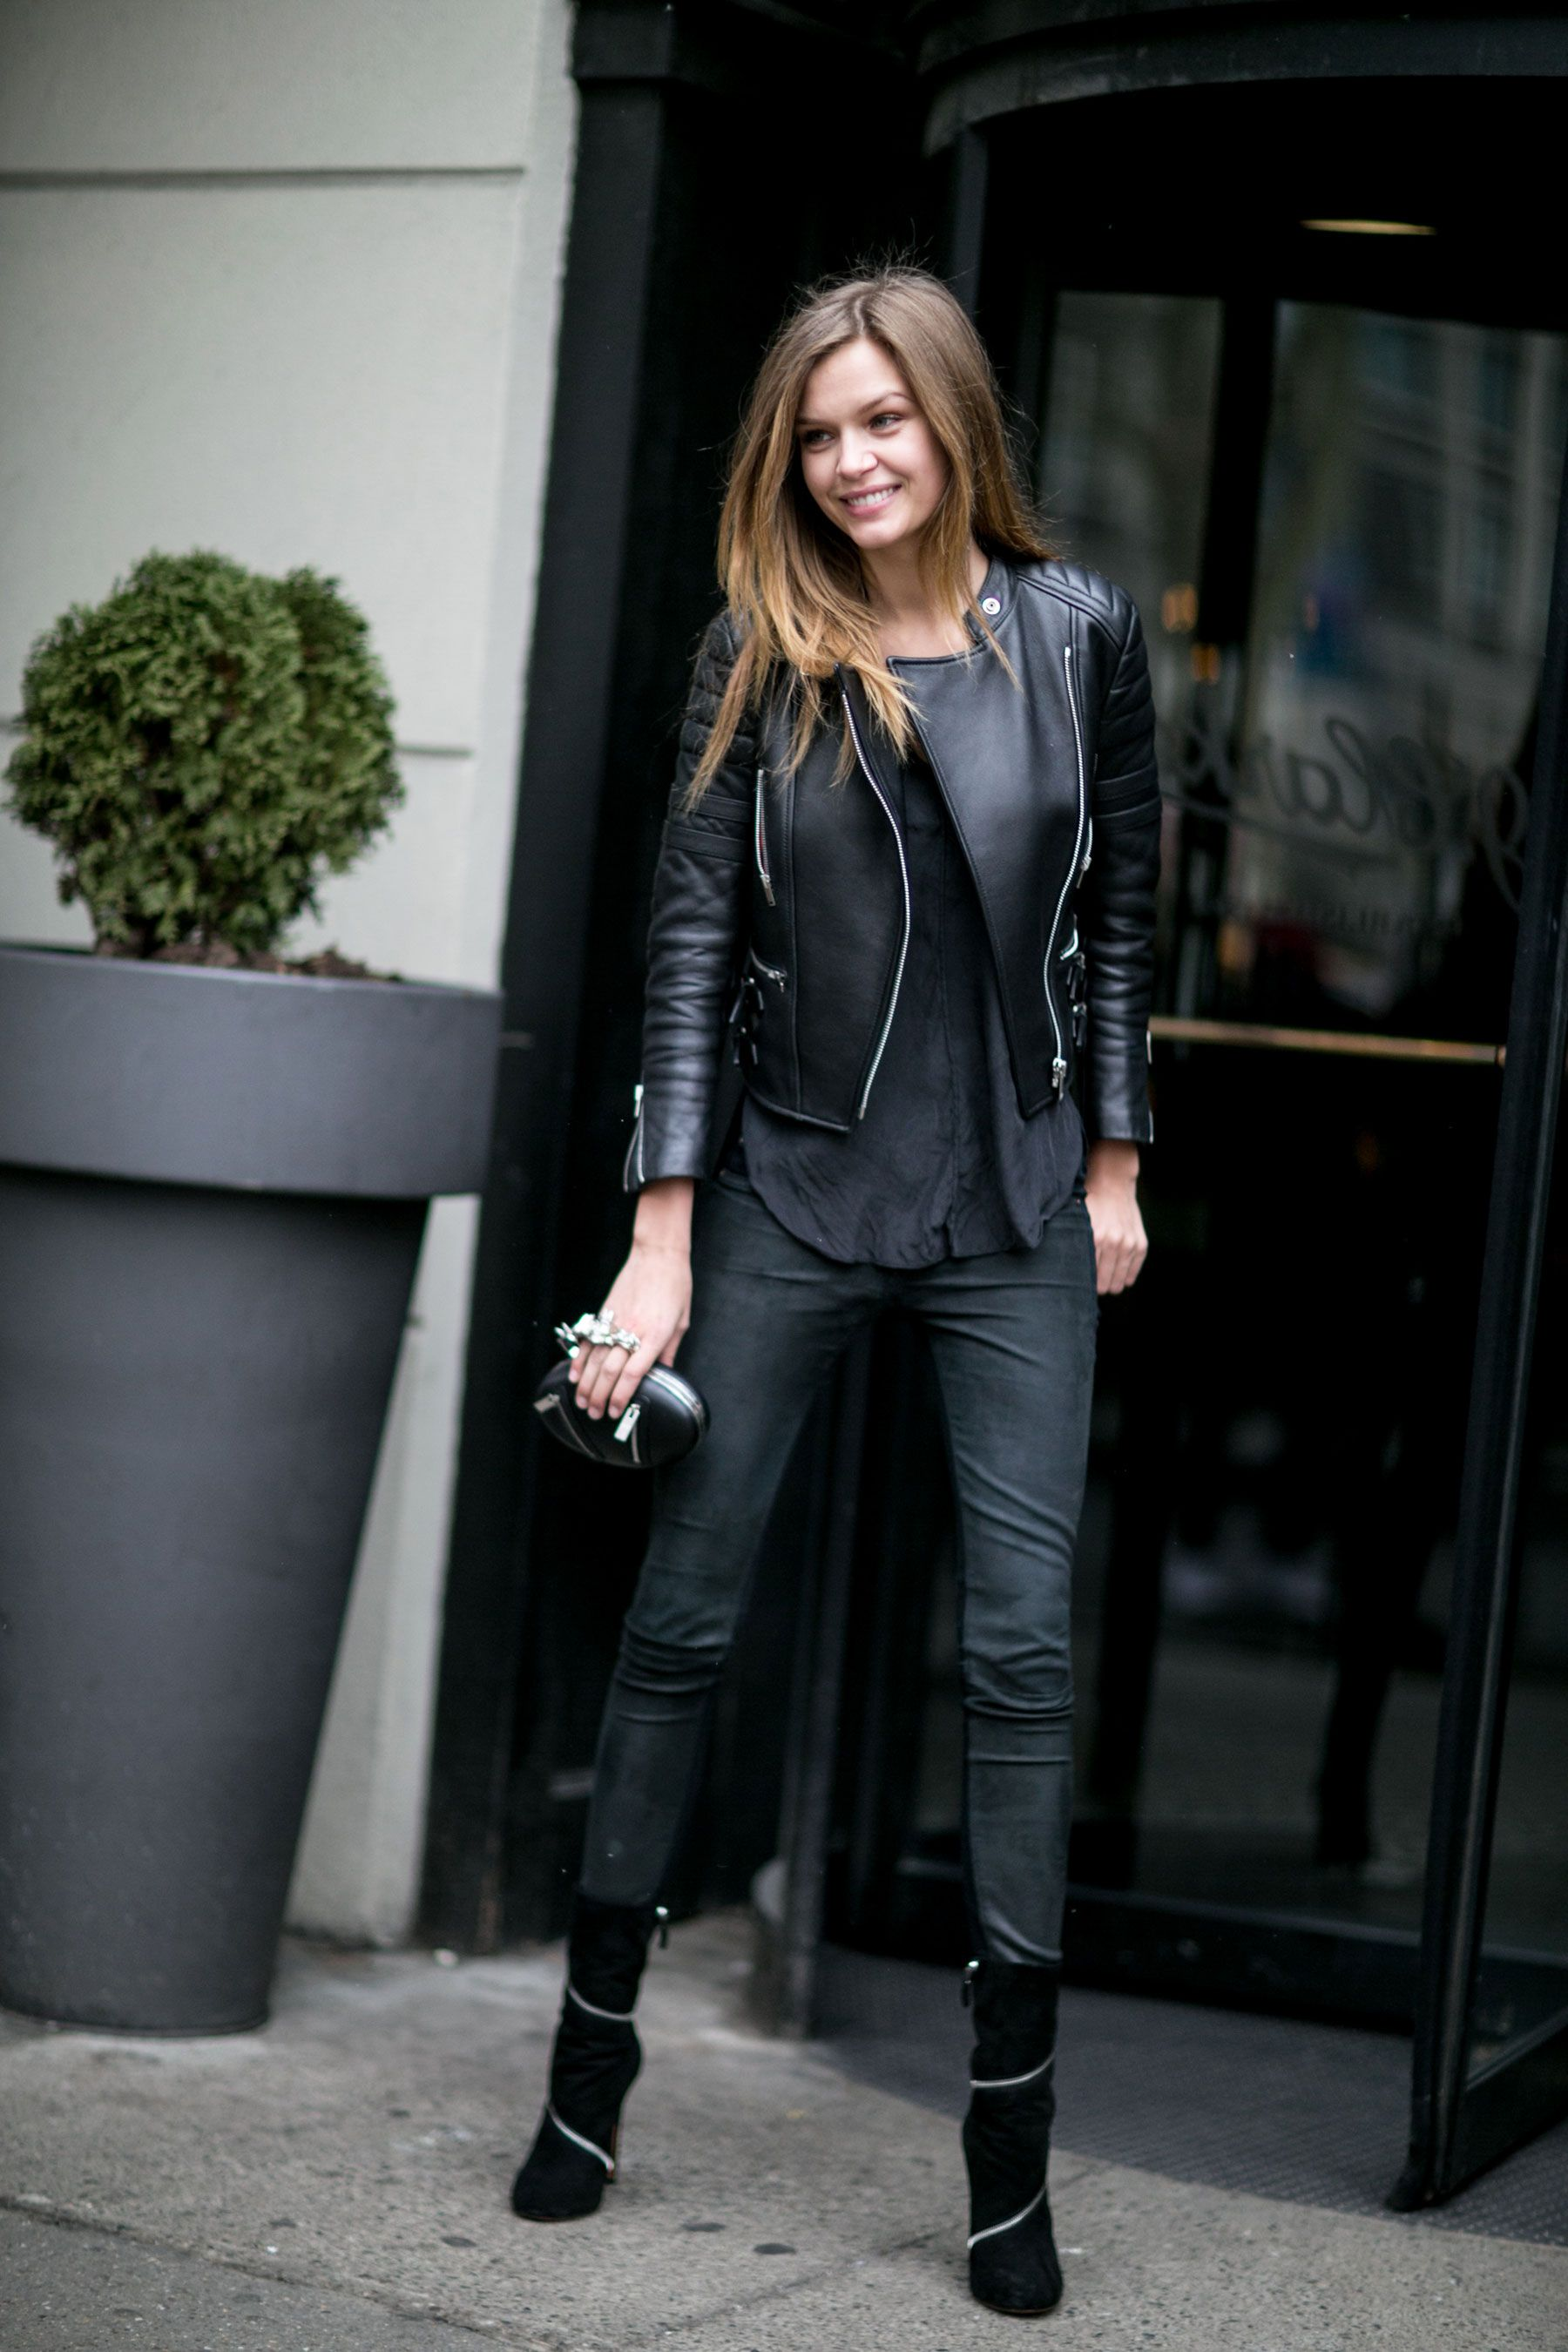 79 Incredible Model Off Duty Street Style Outfits From New